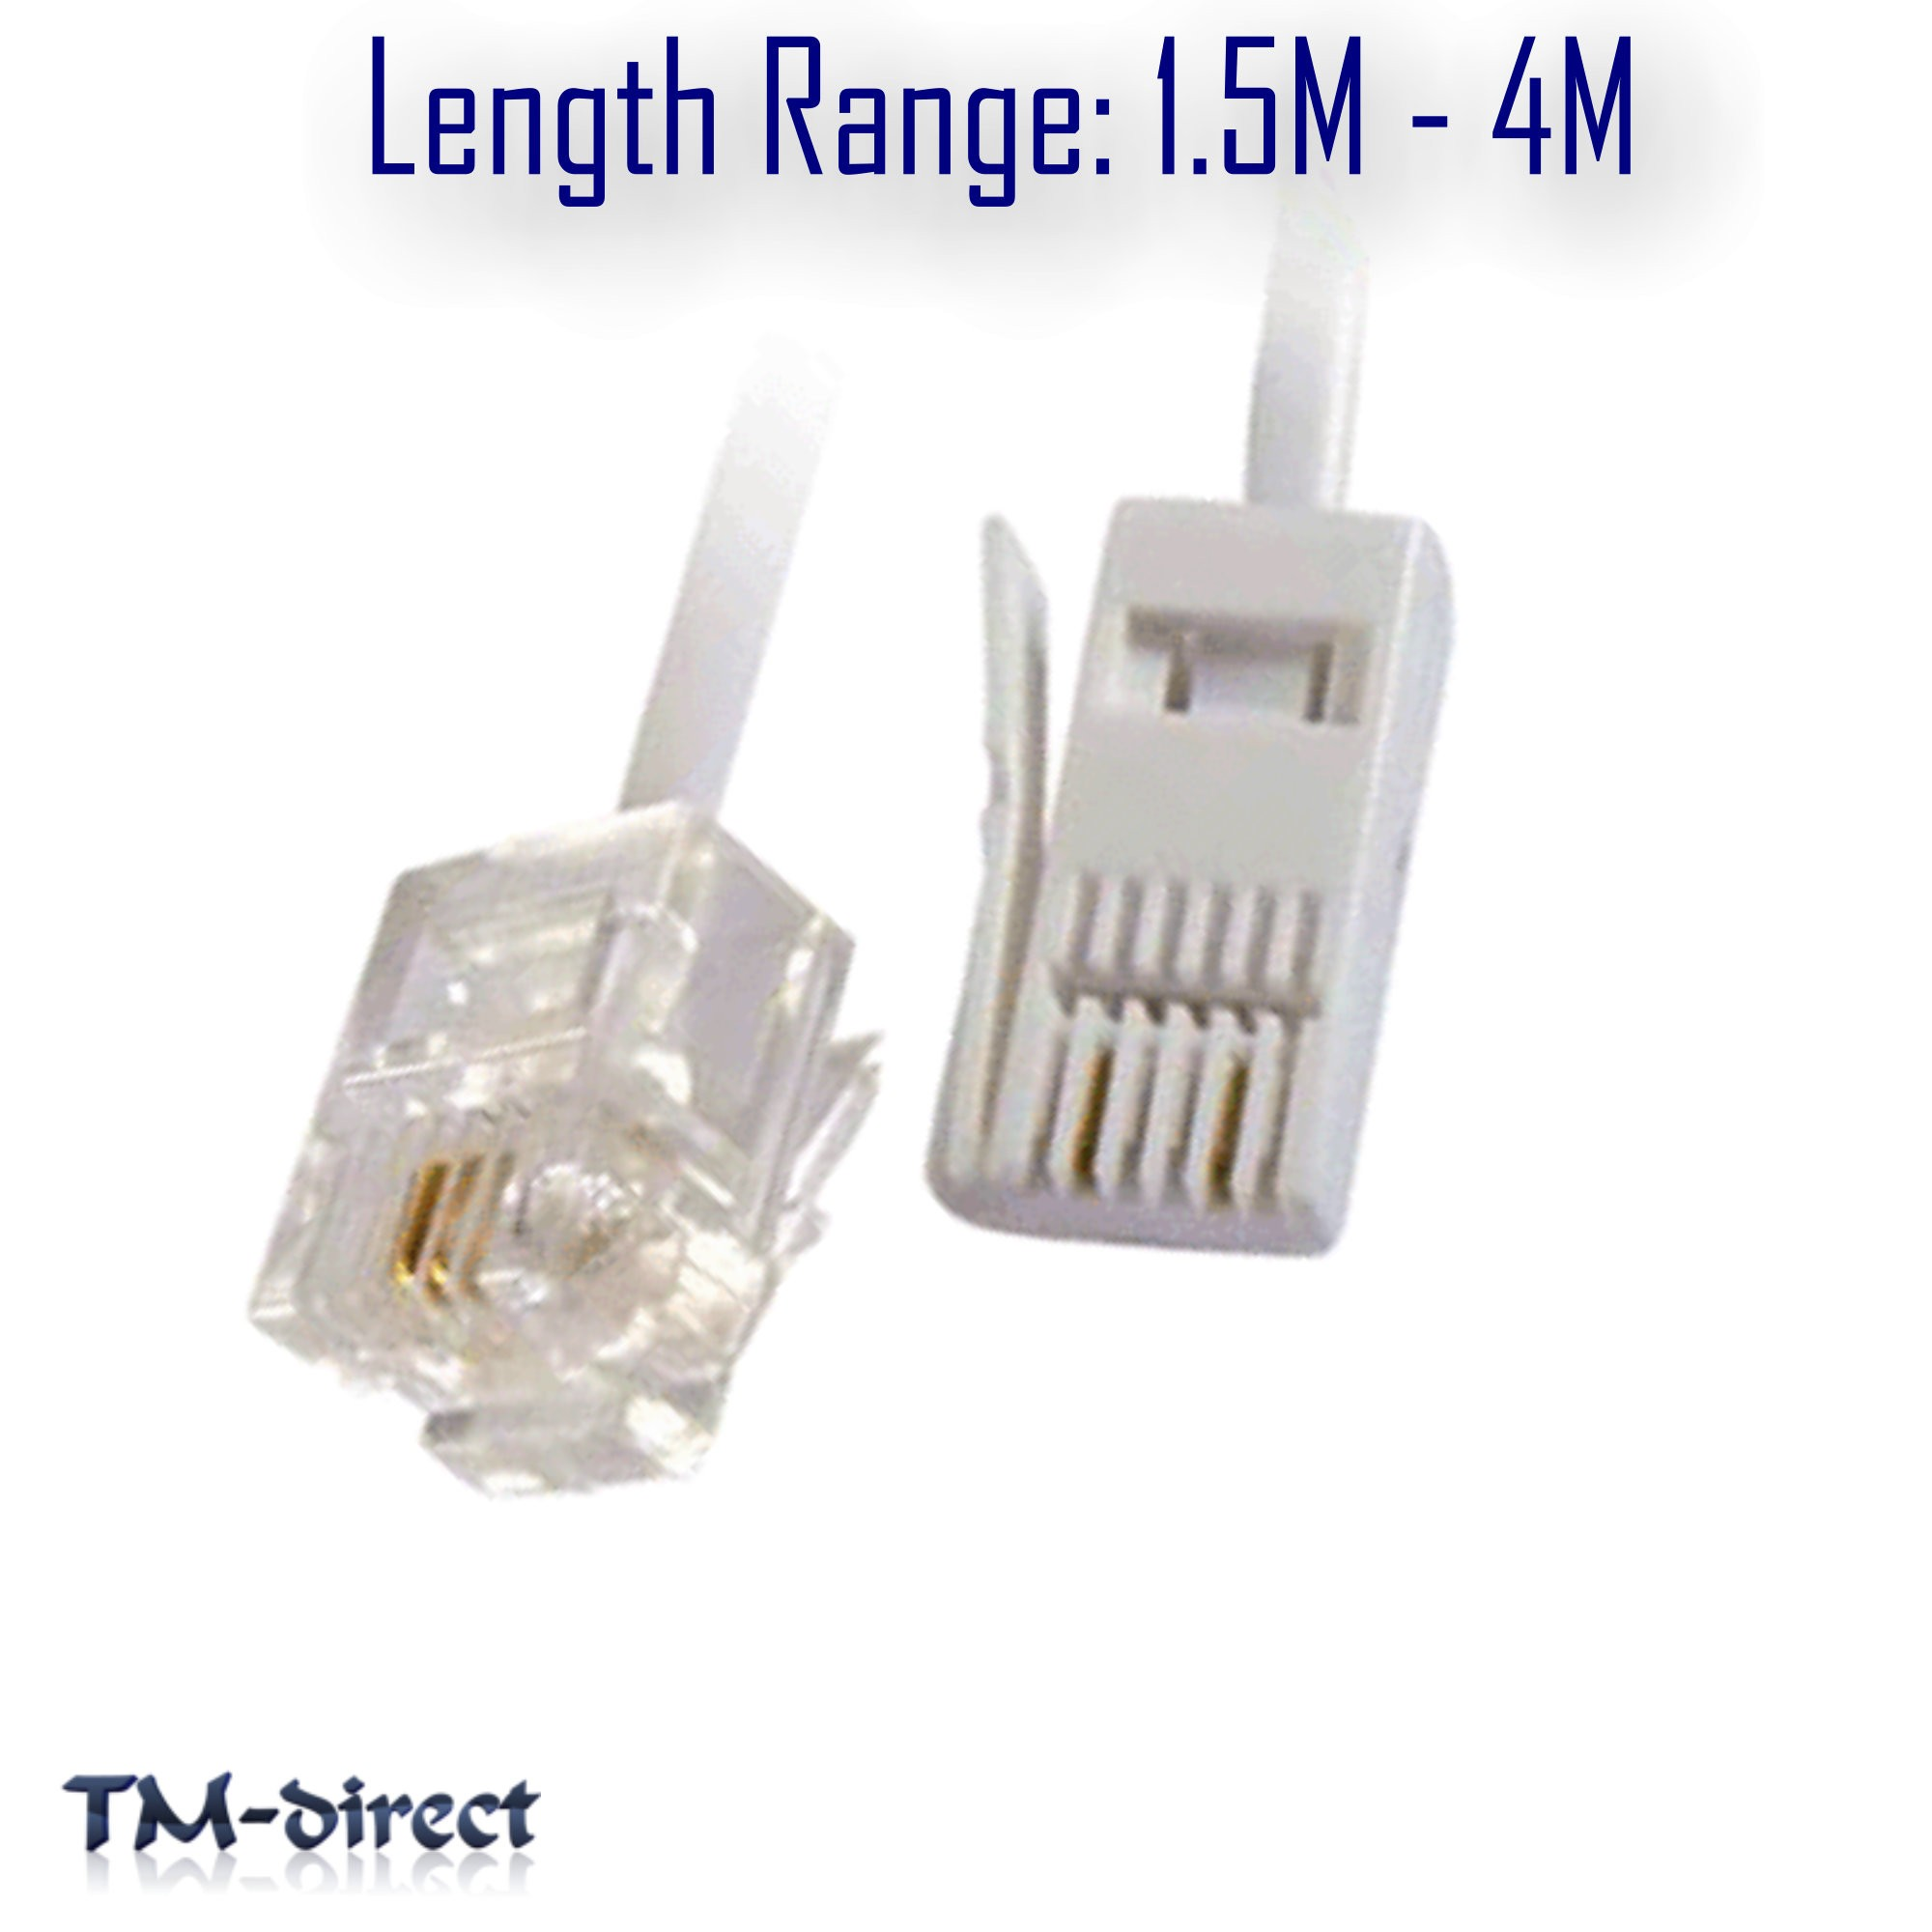 RJ11 to BT Socket 2 Pin Cable Modem FAX Telephone Phone Plug Straight